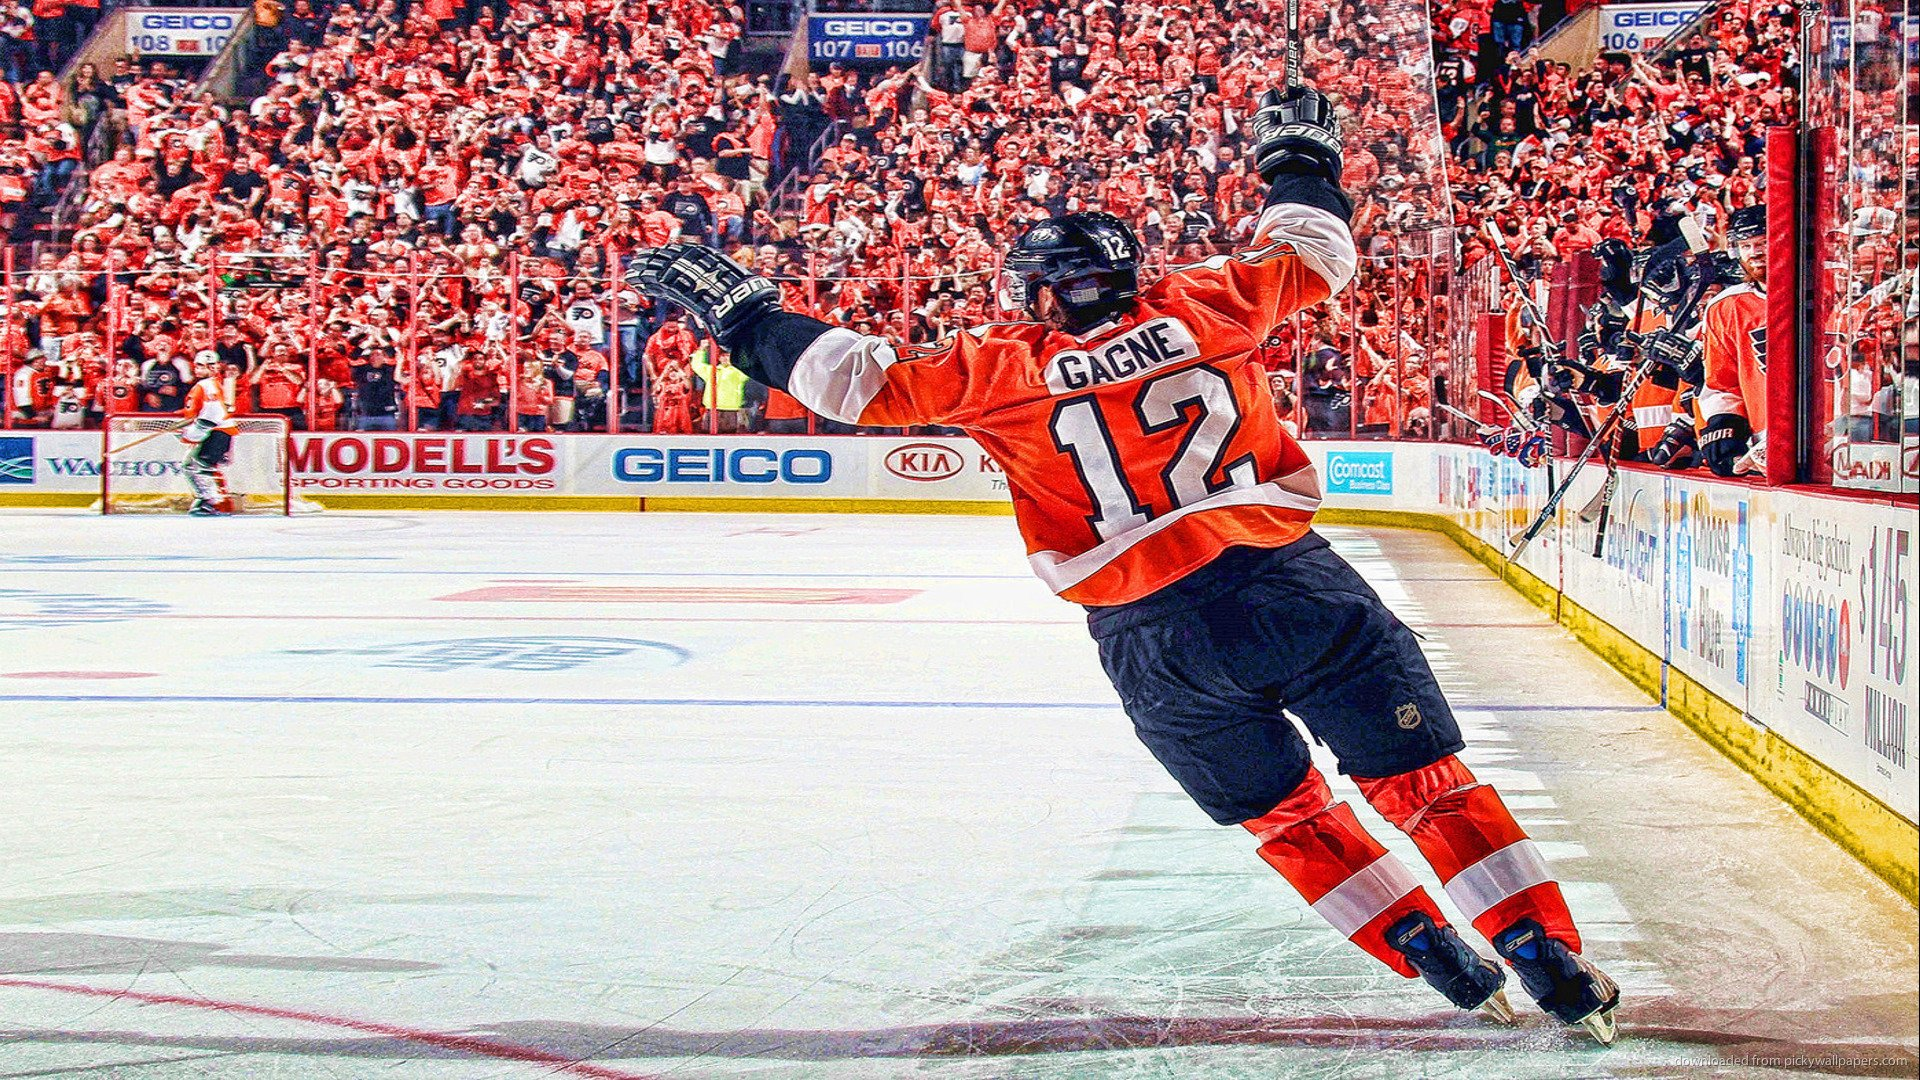 PHILADELPHIA FLYERS nhl hockey 17 wallpaper background 1920x1080